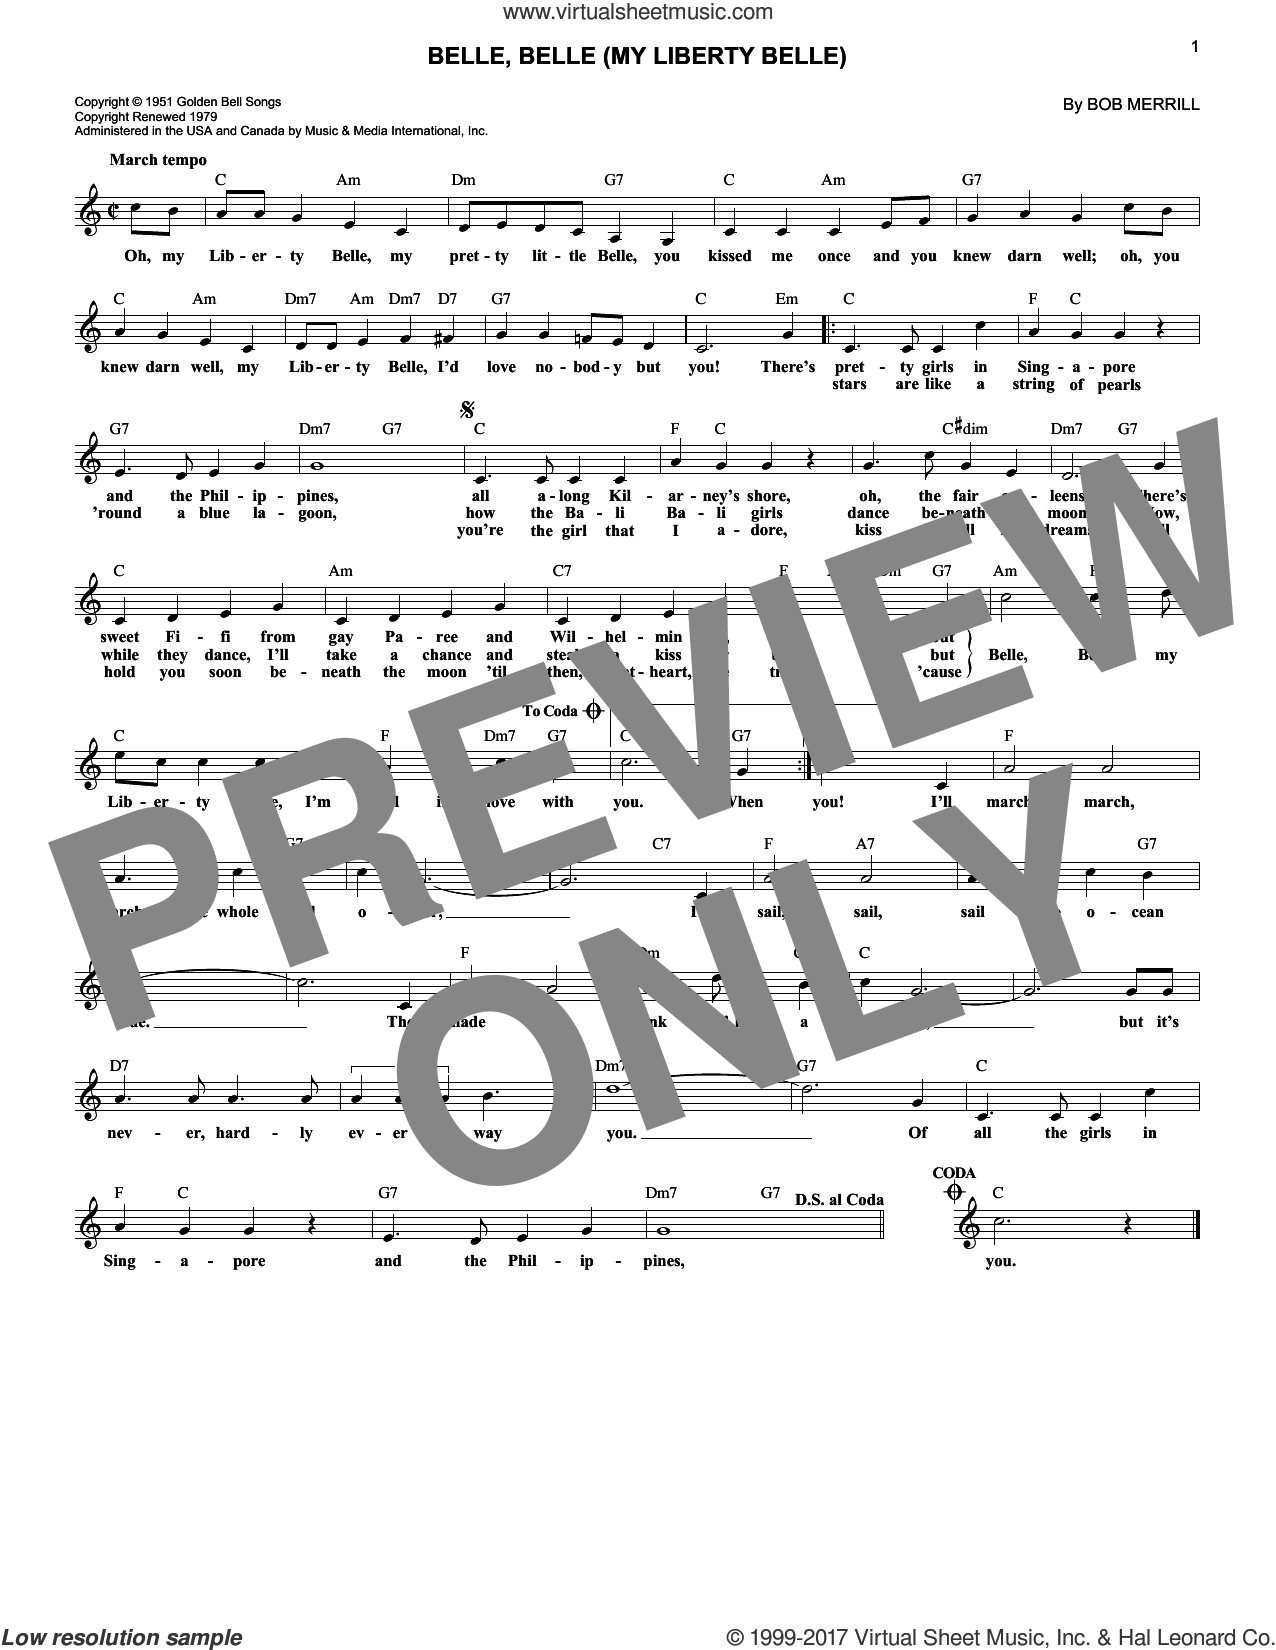 Belle, Belle (My Liberty Belle) sheet music for voice and other instruments (fake book) by Bob Merrill, intermediate. Score Image Preview.